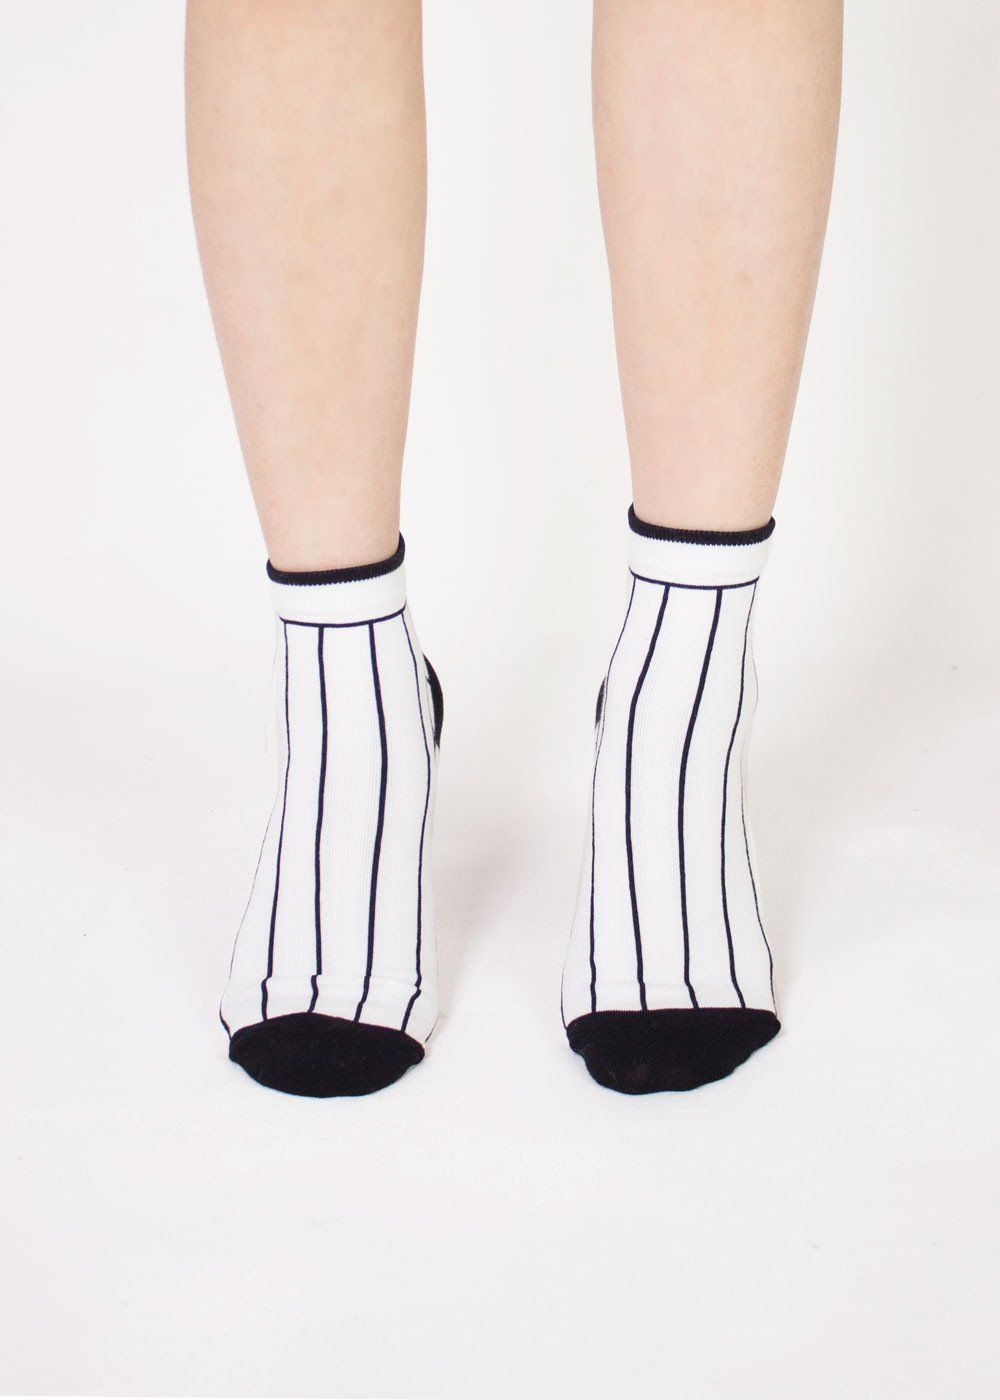 Baseball Socks Look By M Socks Baseball Socks Socks Sneakers